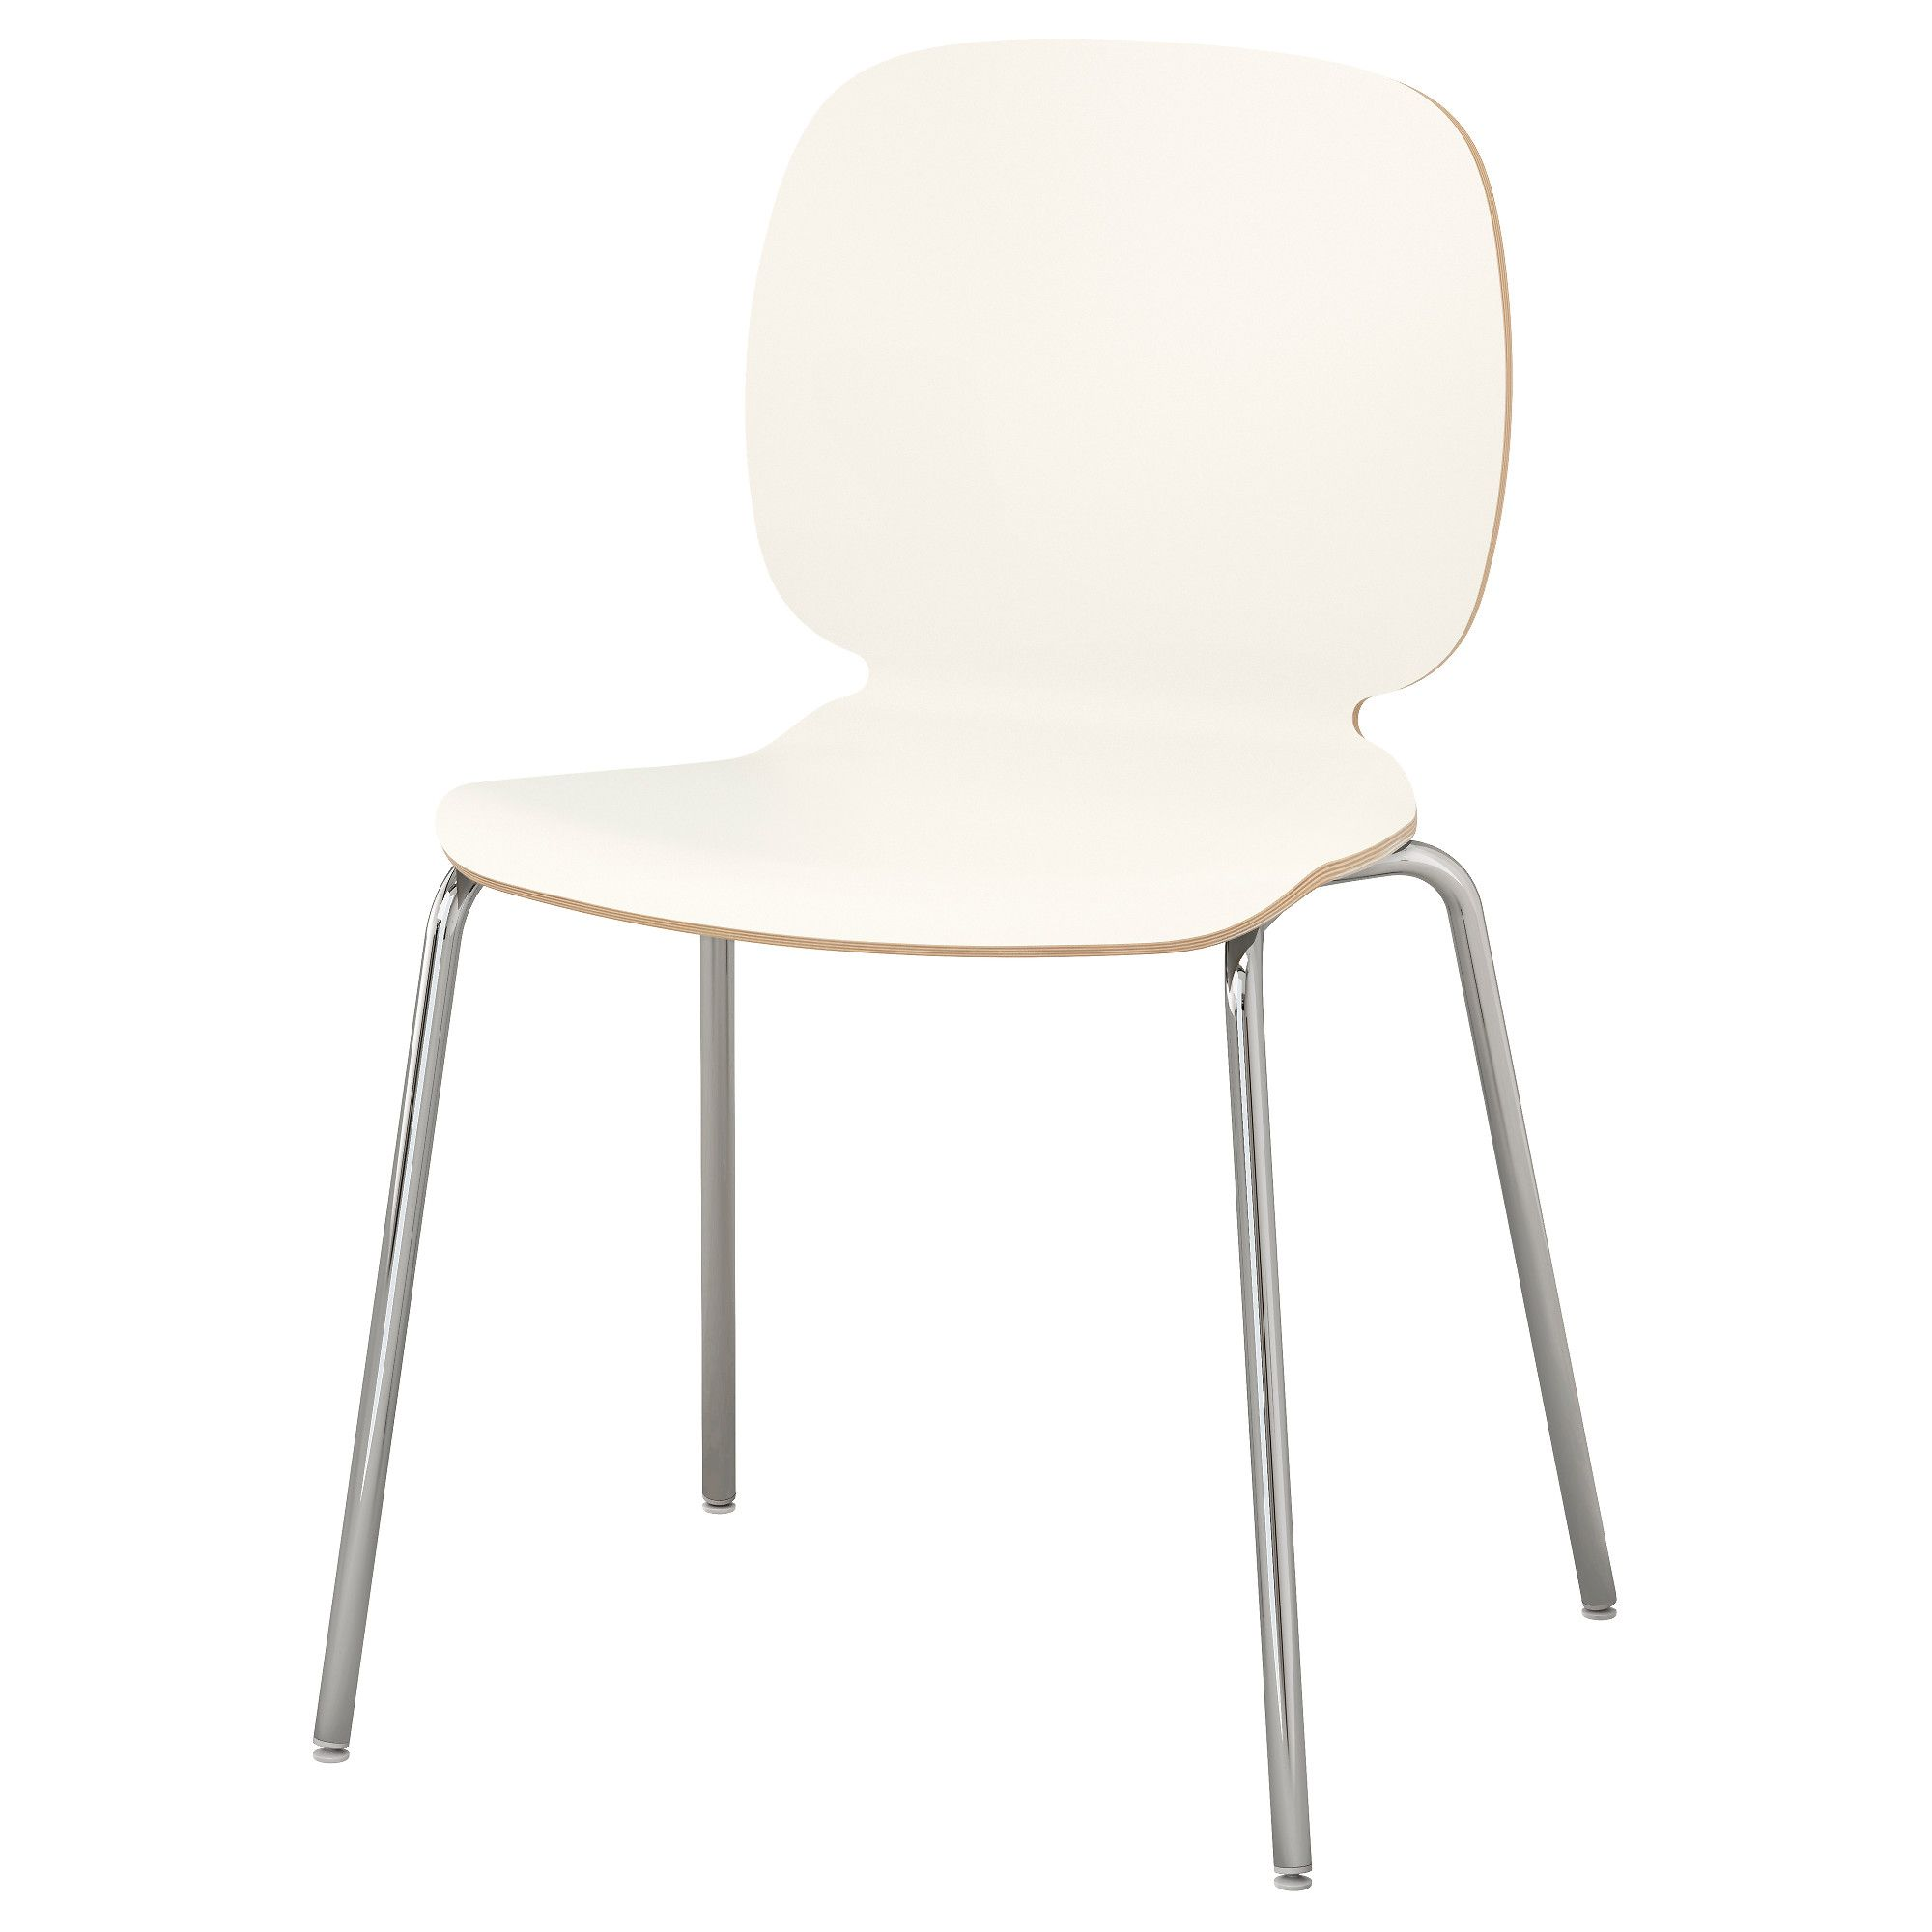 svenbertil chair, white, broringe chrome plated | products